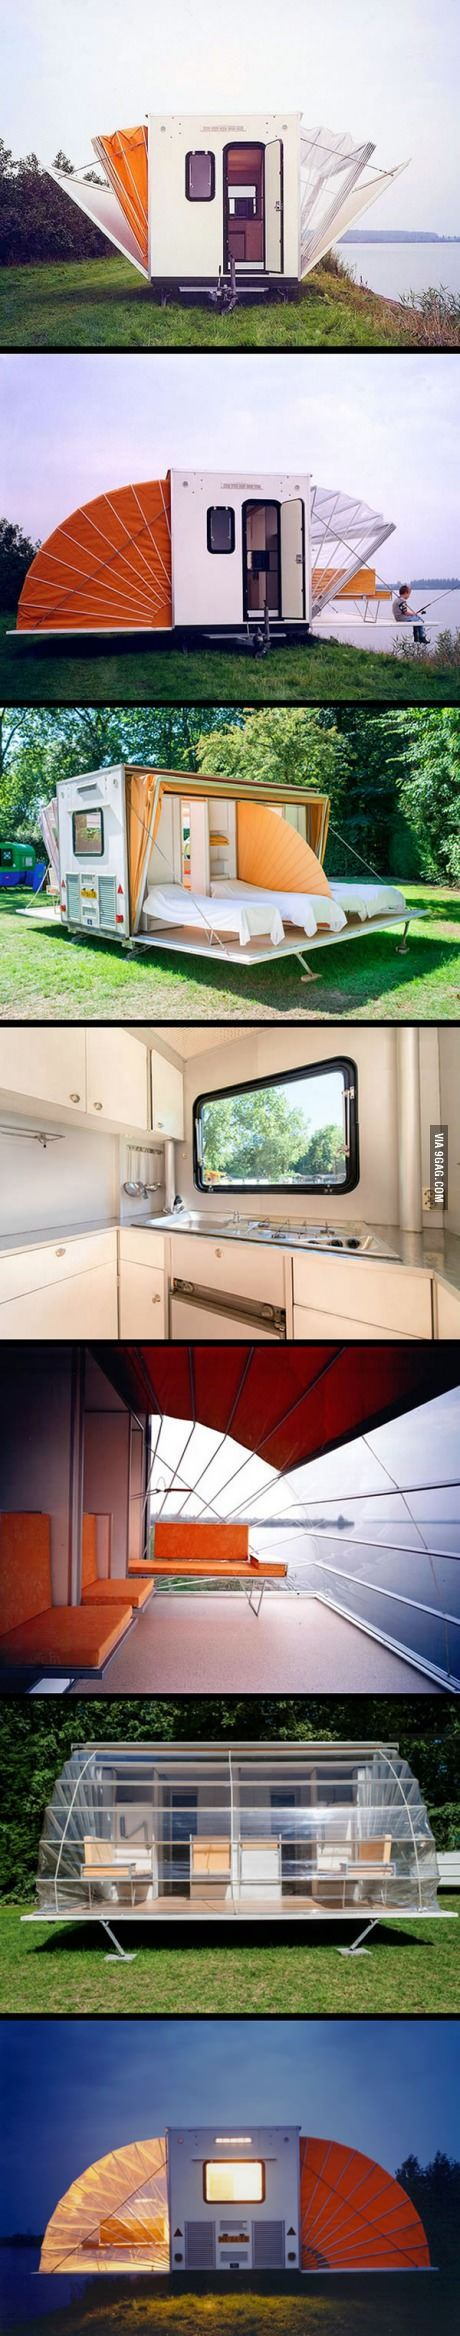 Never knew camping can be this cool